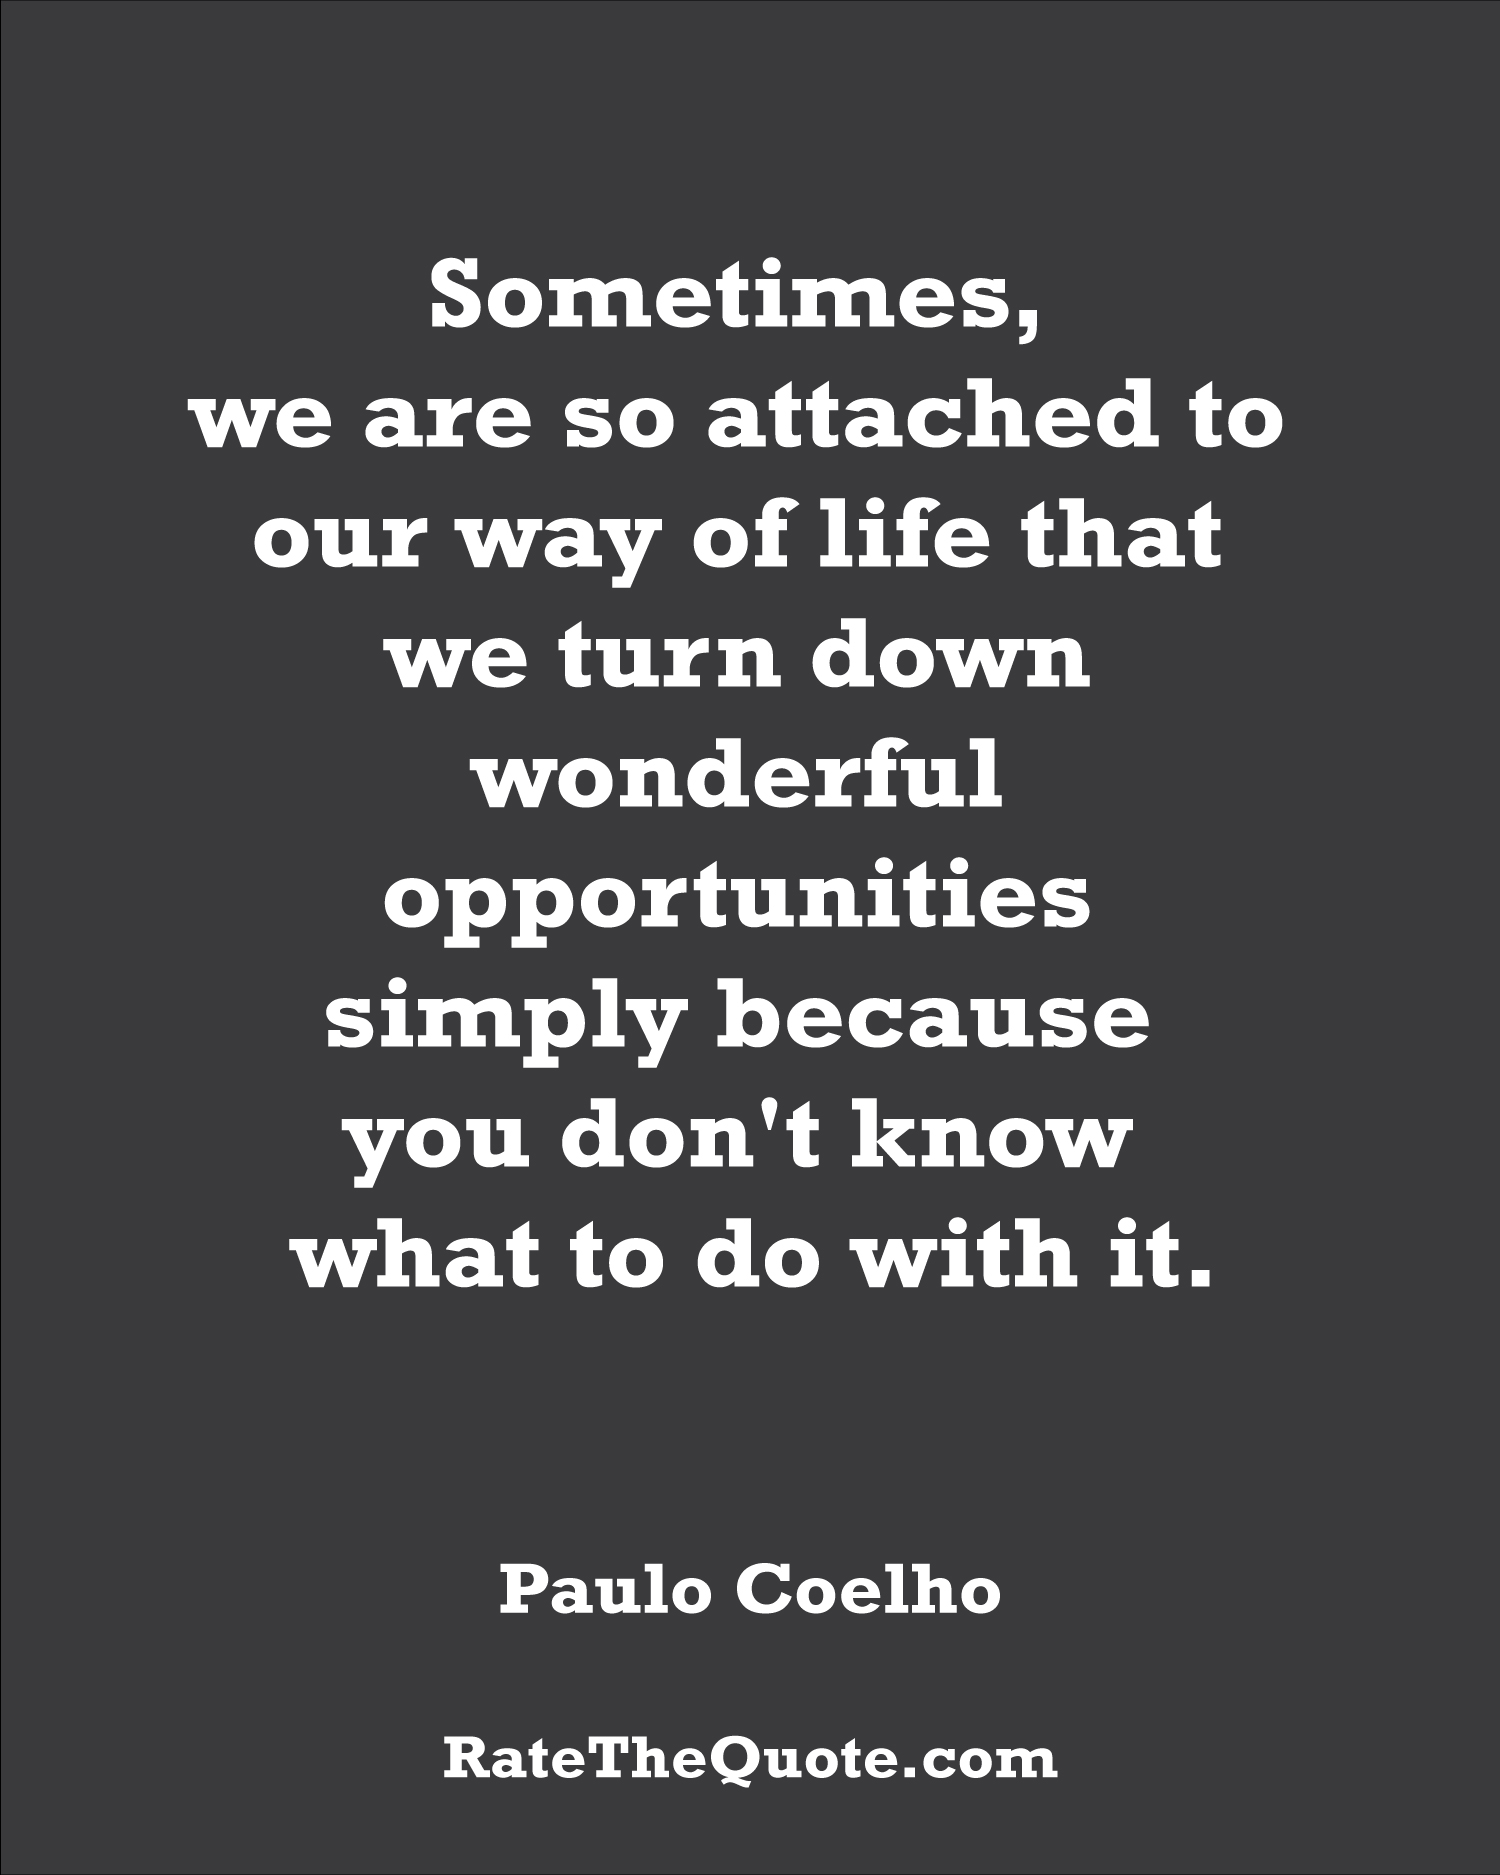 Quote by Paulo Coelho Sometimes, we are so attached to our way of life that we turn down wonderful opportunities simply because you don't know what to do with it.